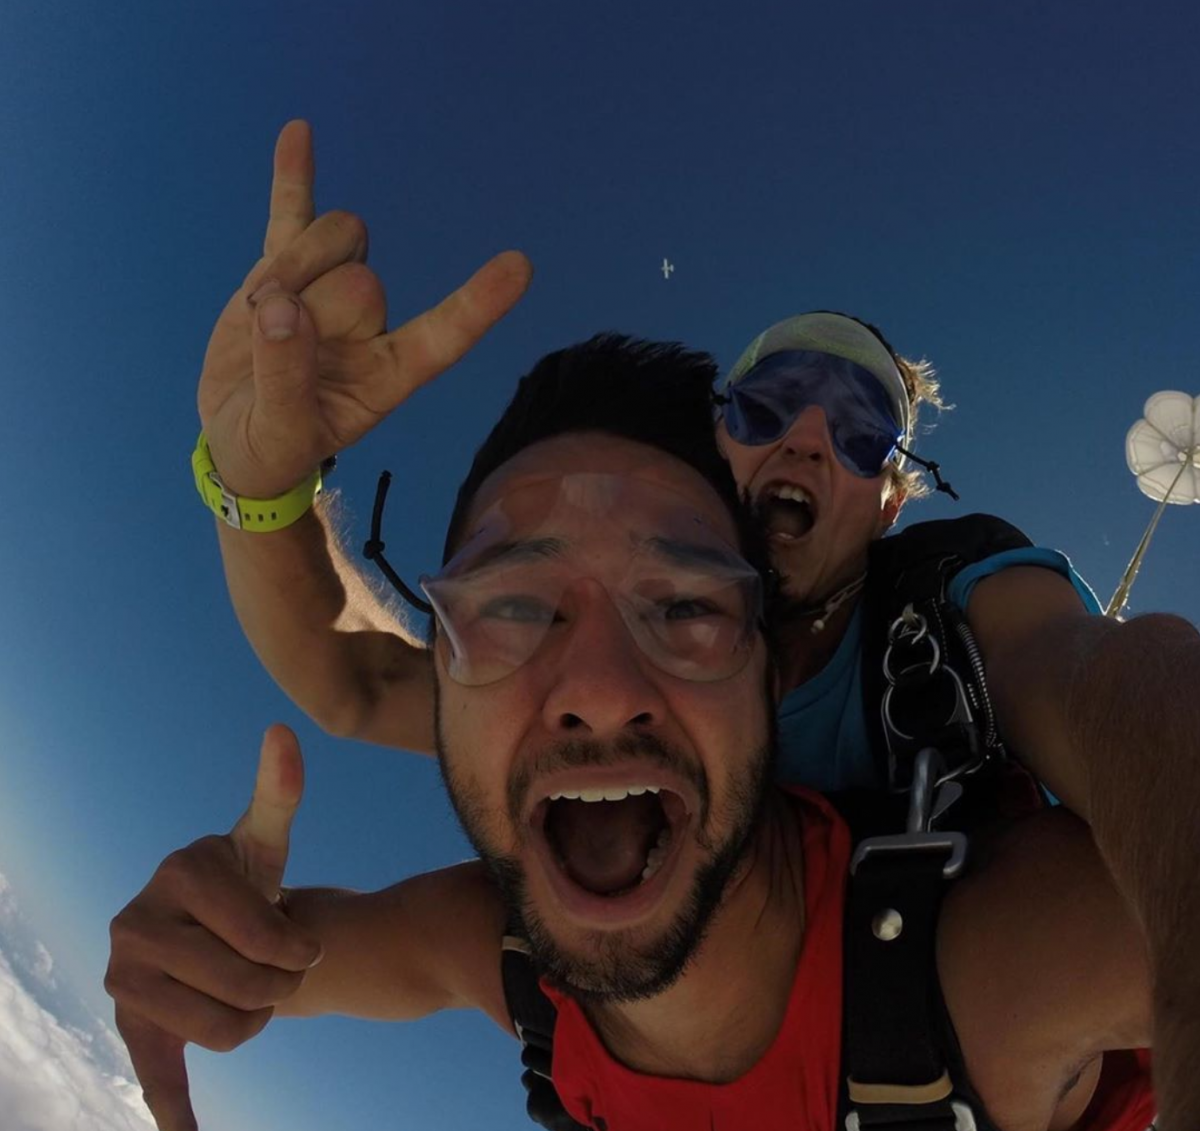 Man pumped as his parachute deploys while tandem skydiving at Skydive St Louis